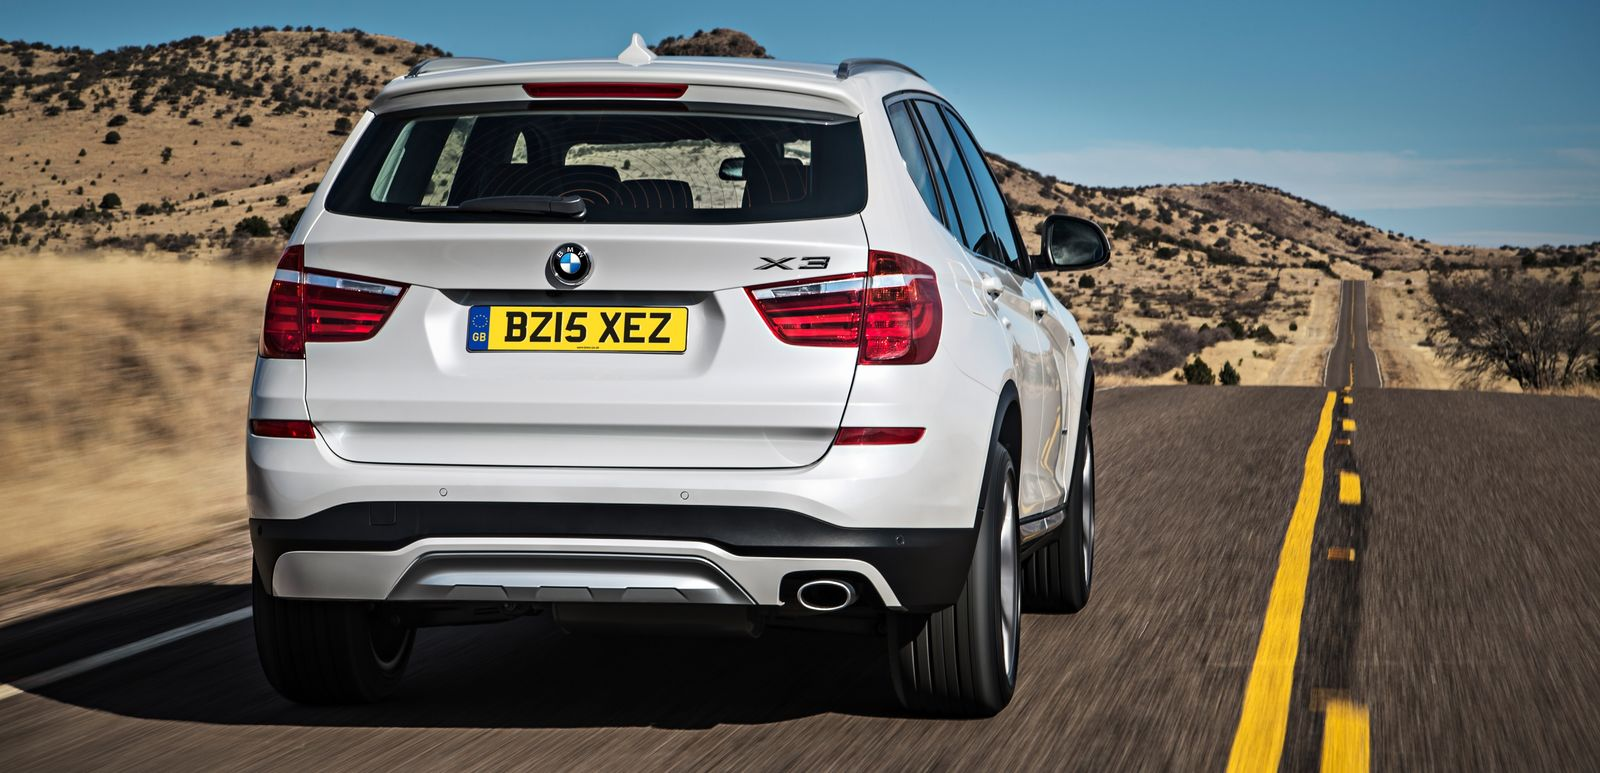 BMW X3 – sizes, dimensions and towing weights | carwow